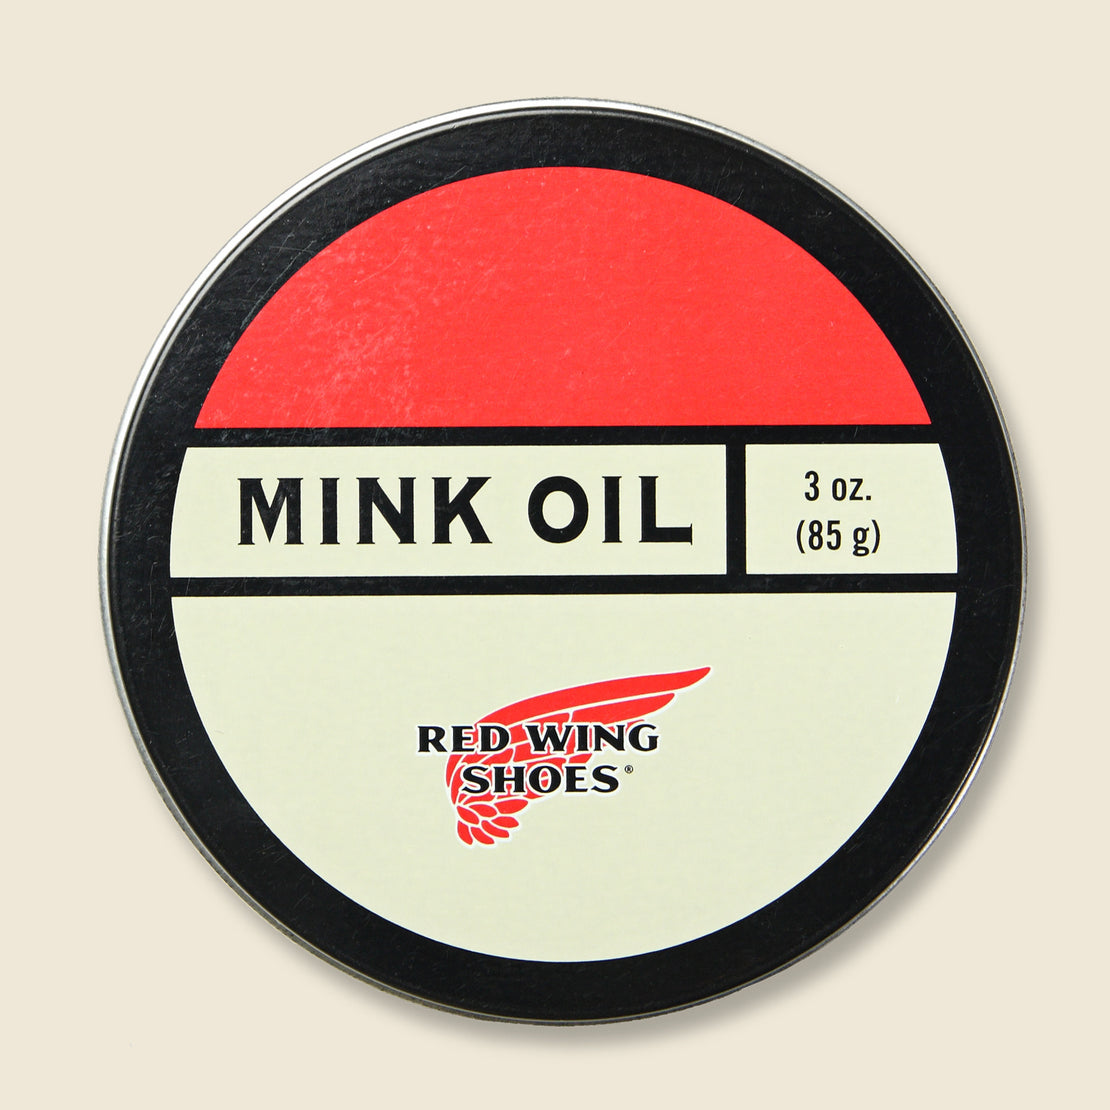 Red Wing - Mink Oil - 3 oz - Red Wing - STAG Provisions - Accessories - Shoe Care